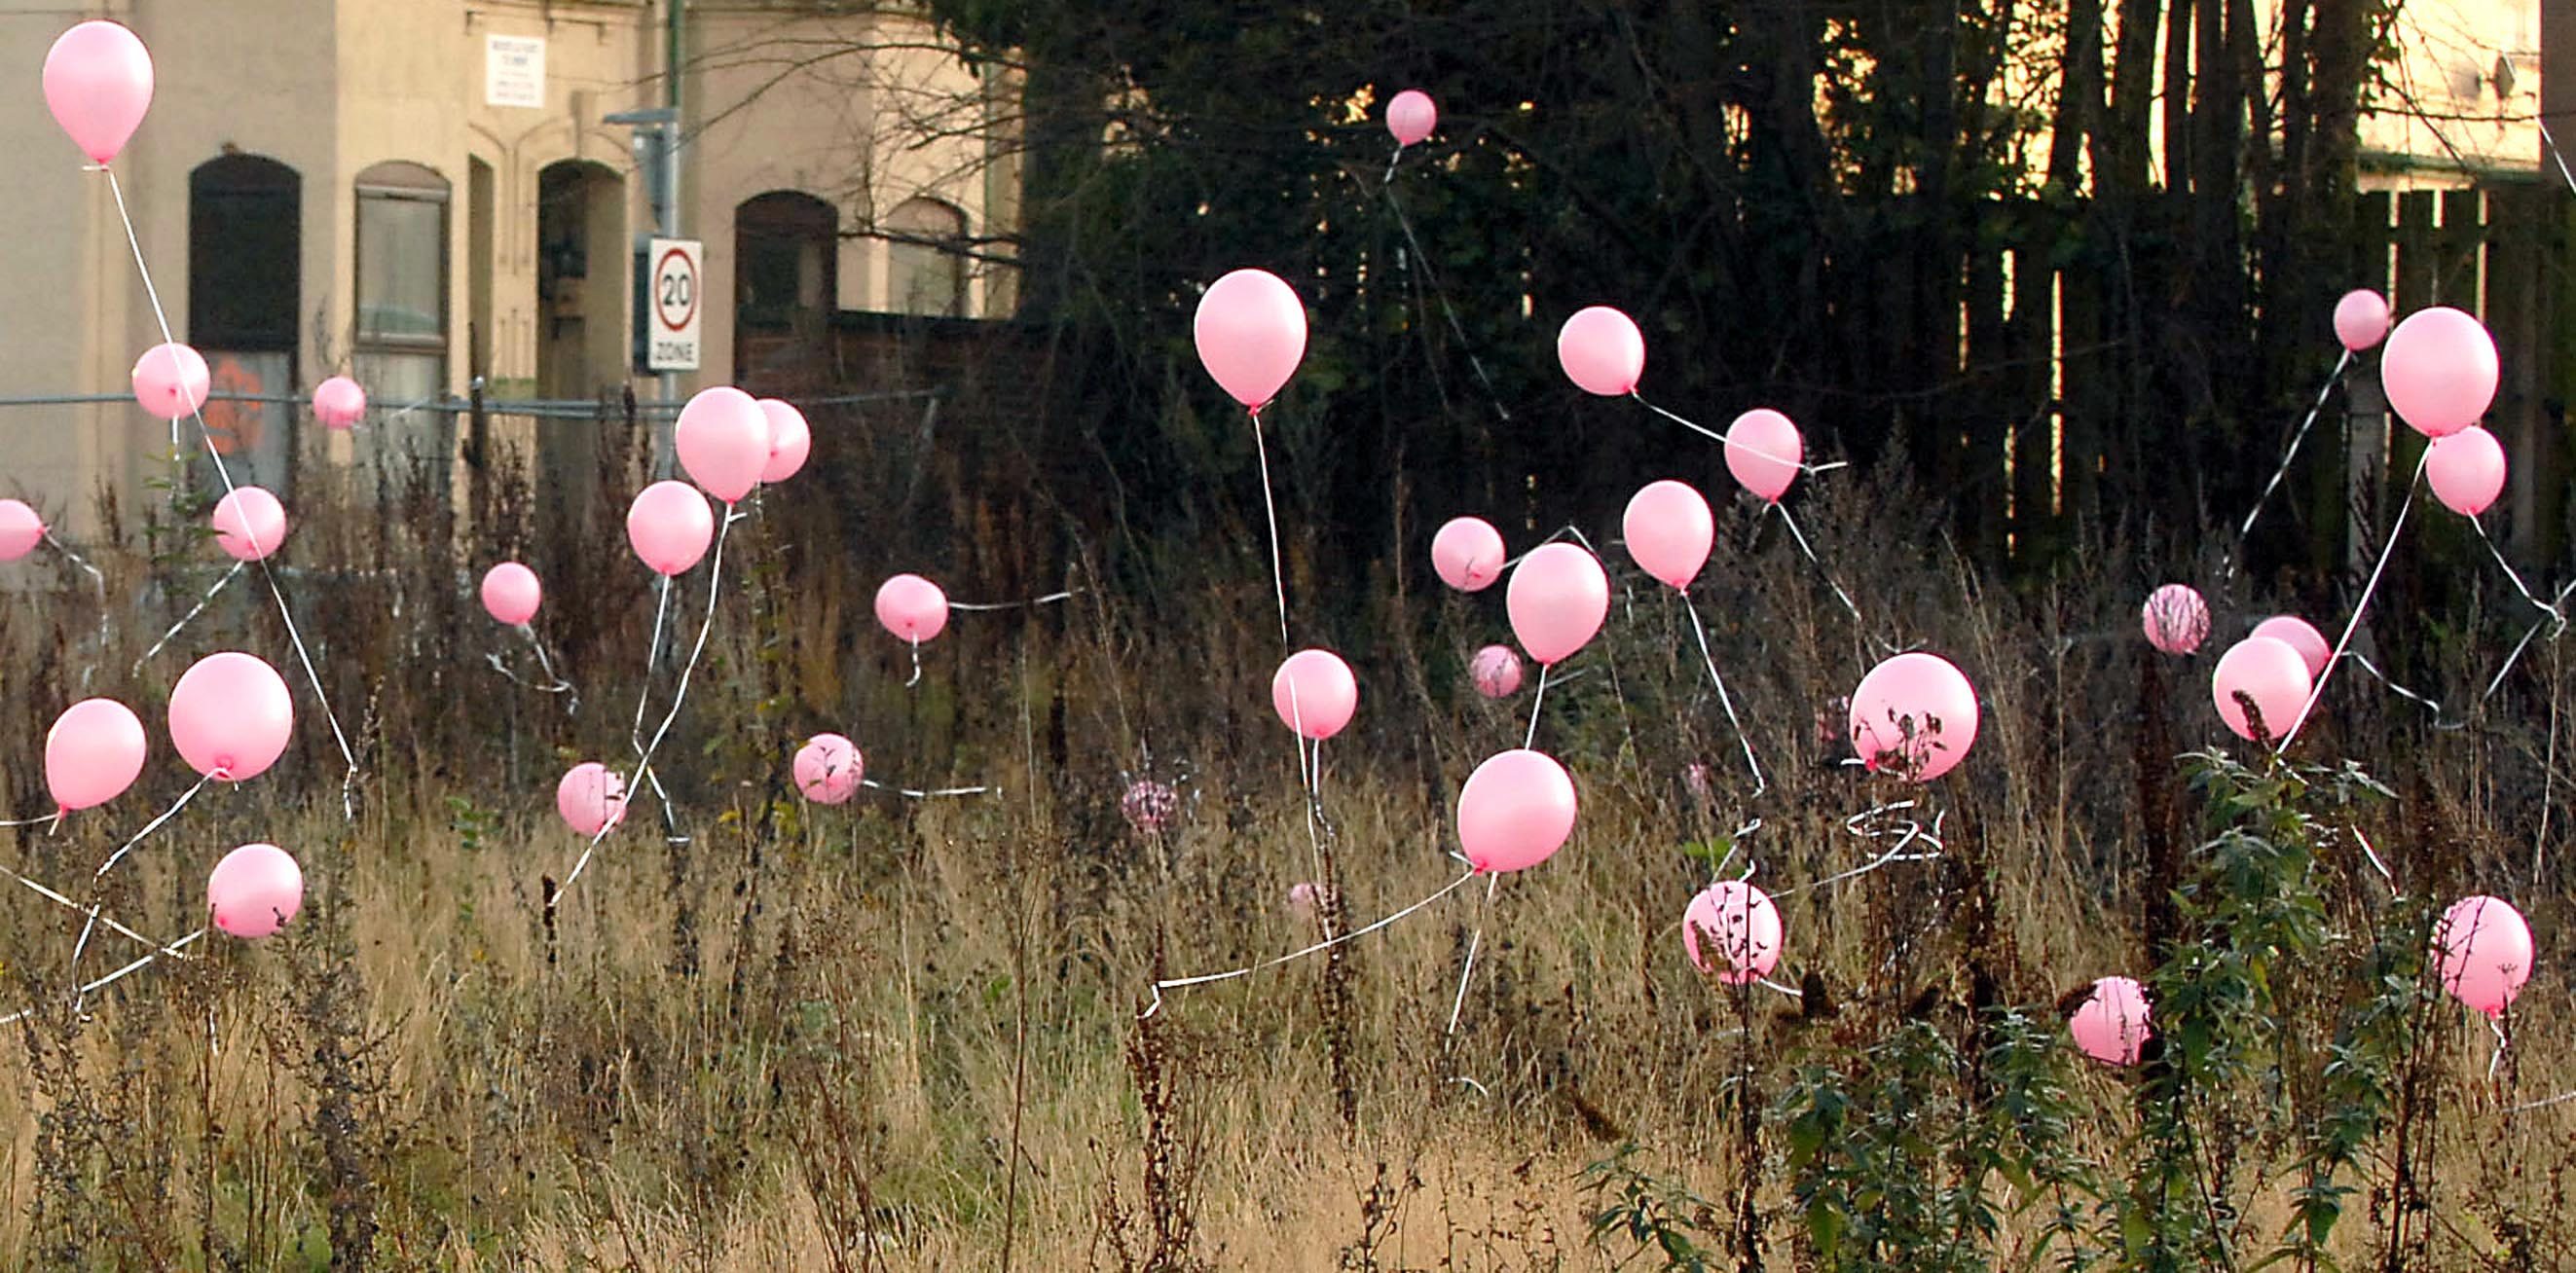 Mystery surrounds pink balloons